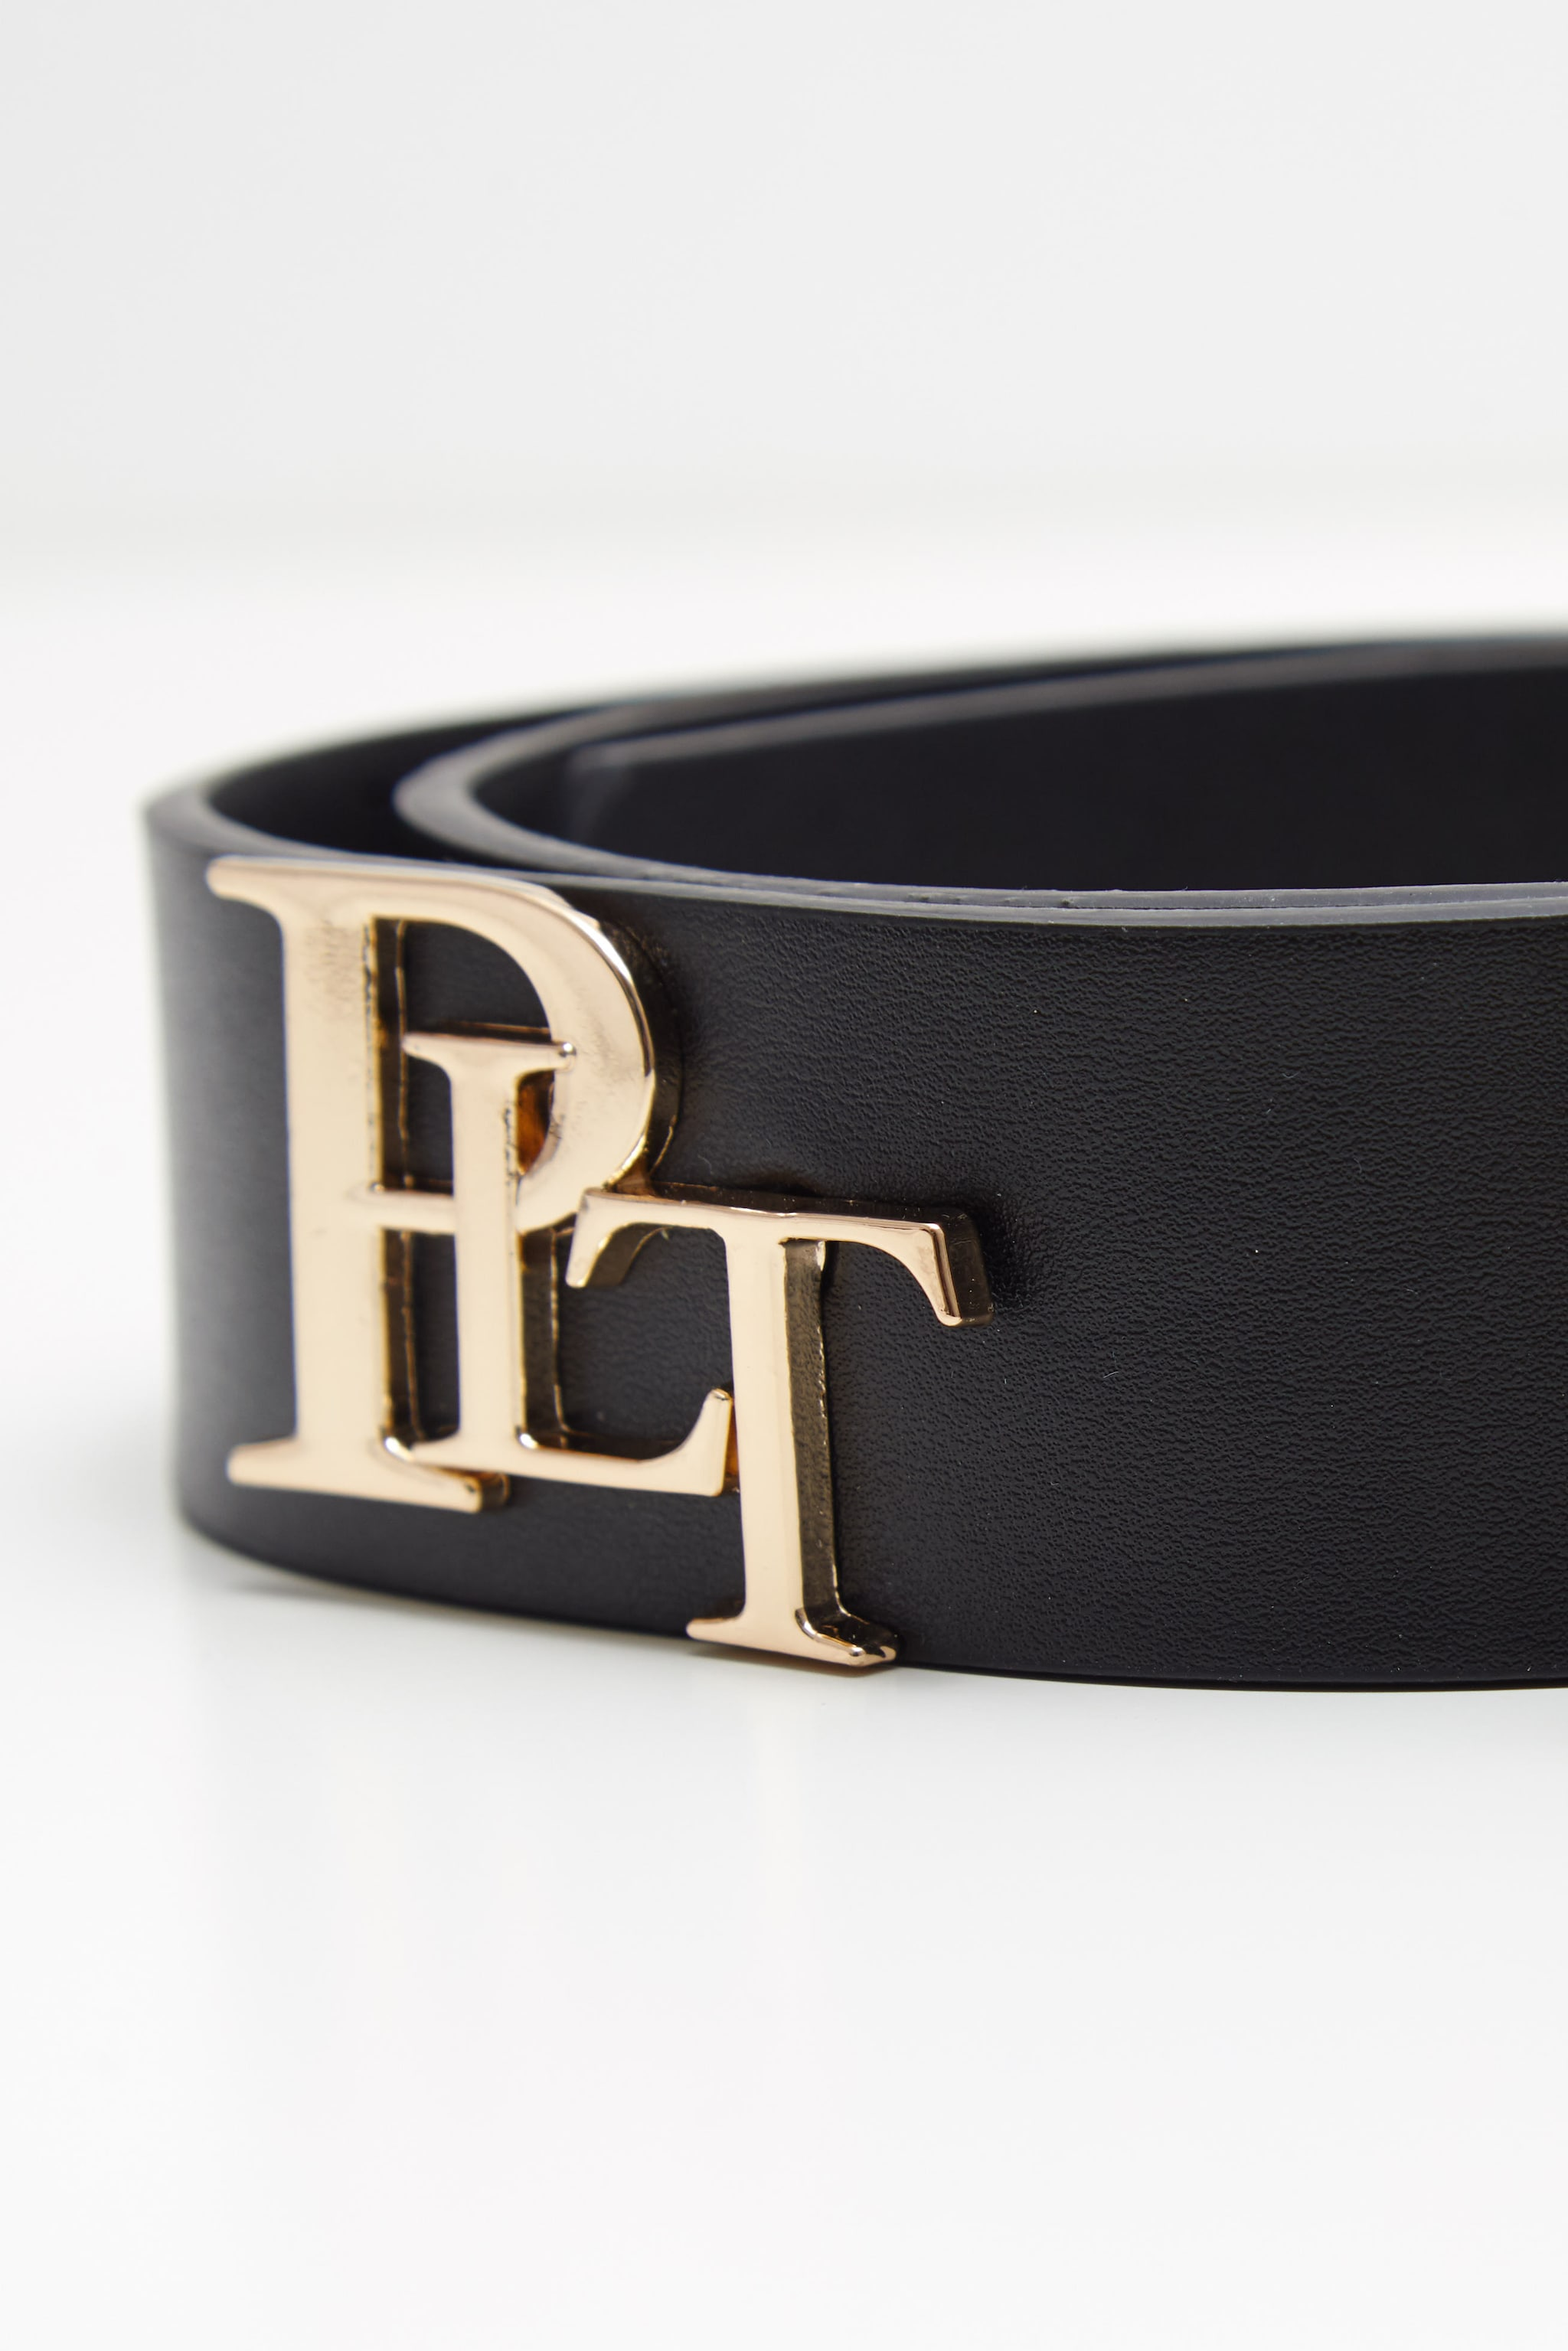 PRETTYLITTLETHING Logo Black Back Branded Buckle Belt 4